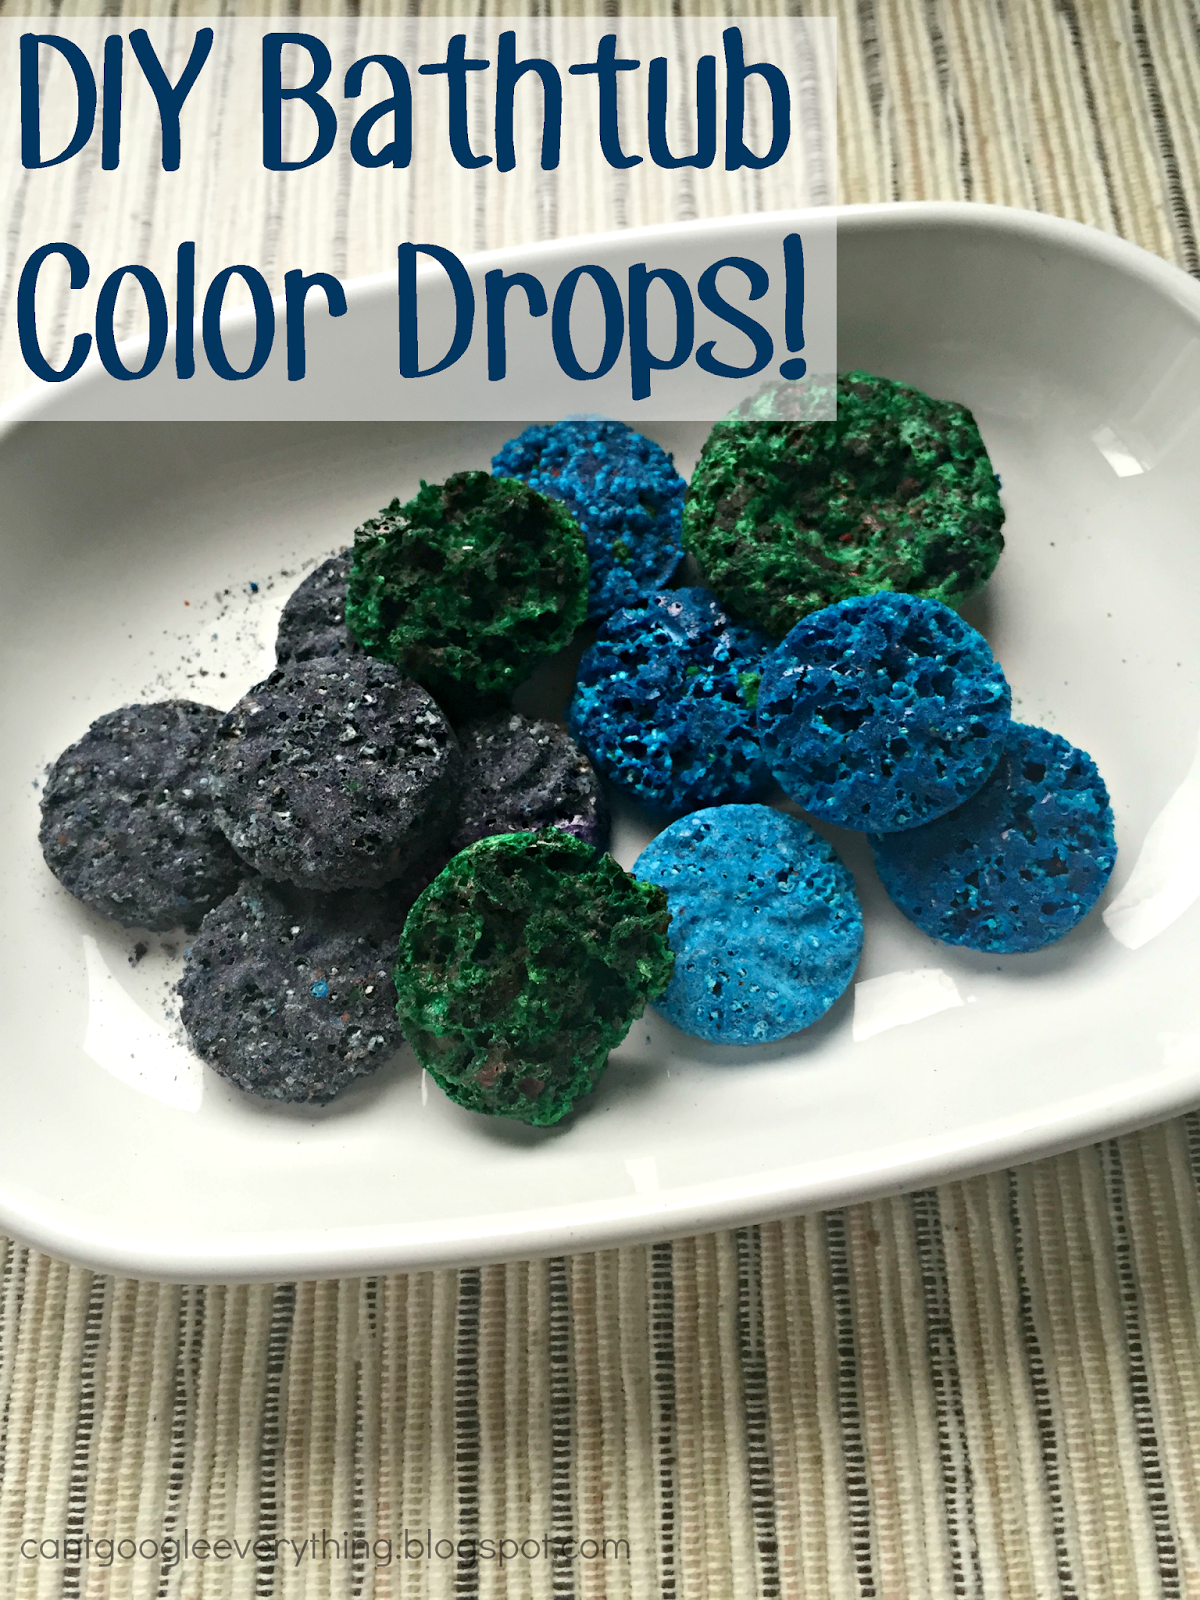 DIY Homemade Bathtub Color Drops! - My Mini Adventurer